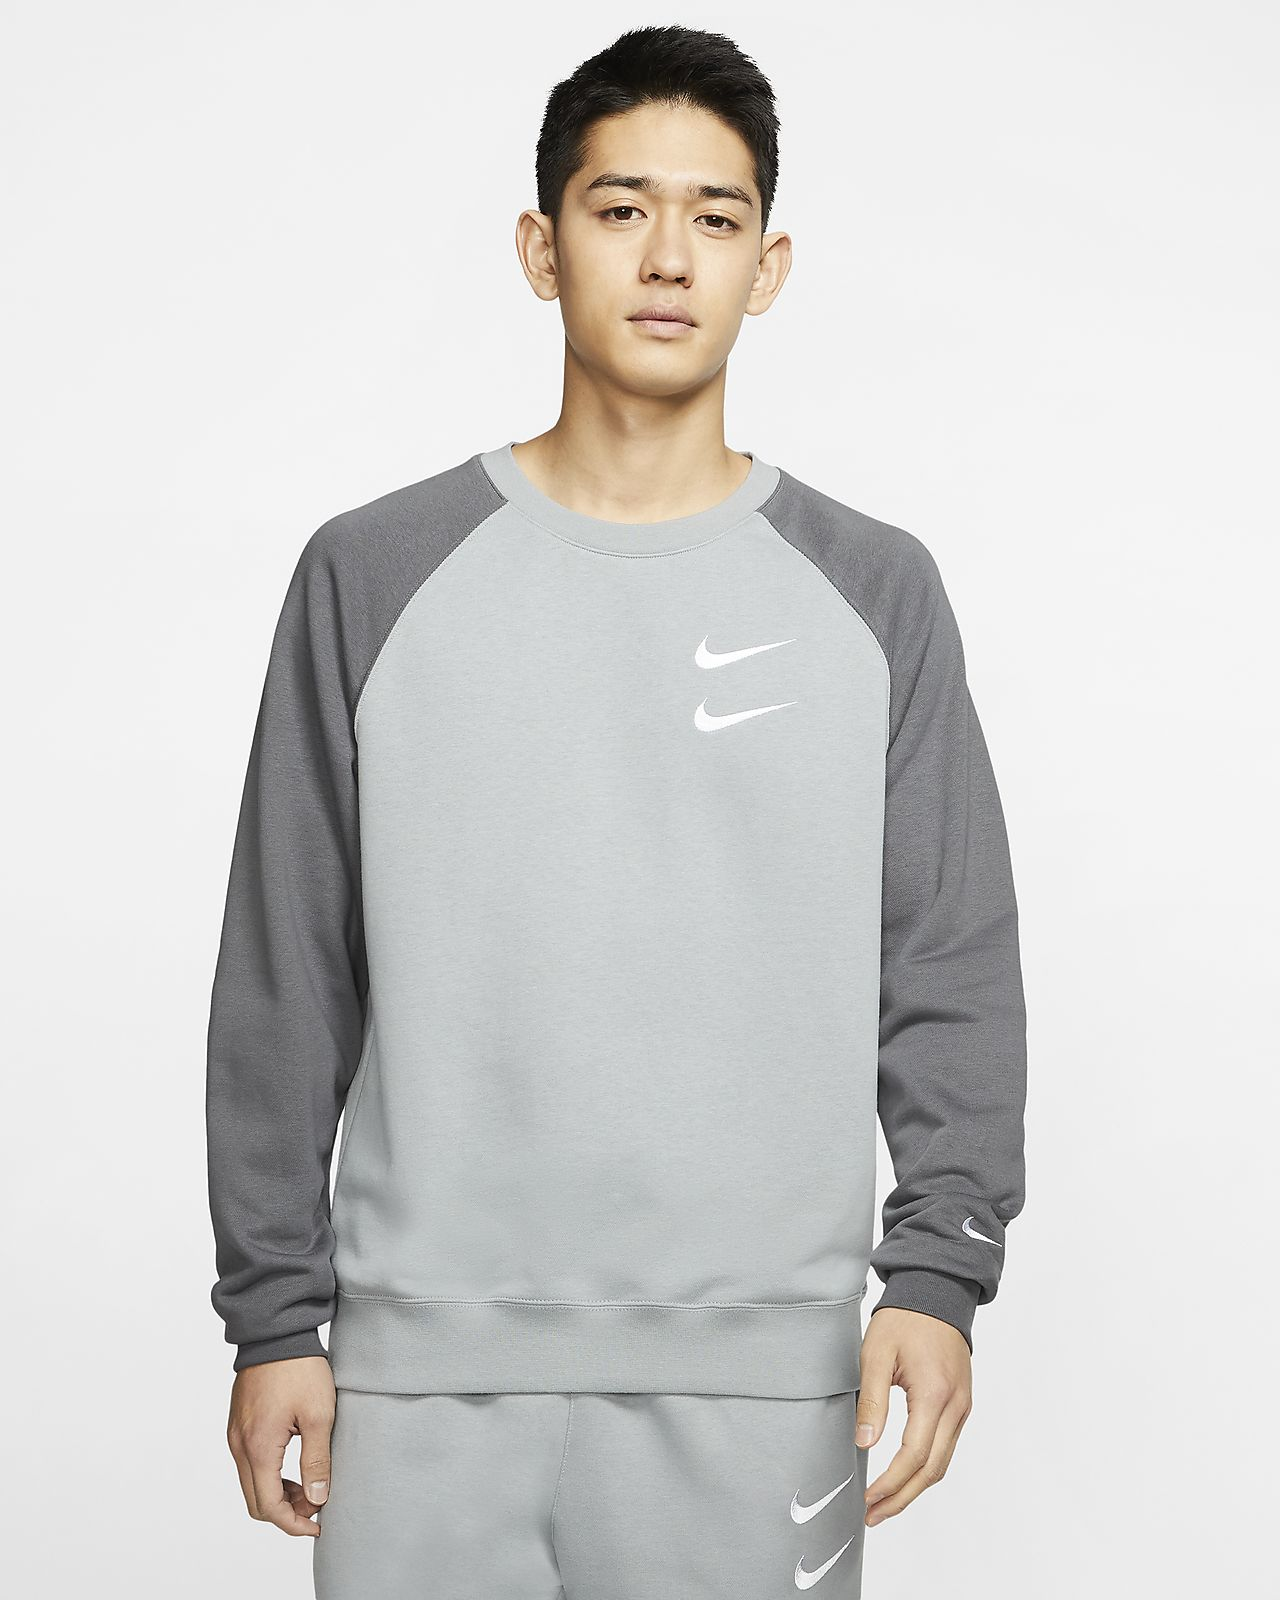 Nike Sportswear Swoosh Men's French Terry Crew